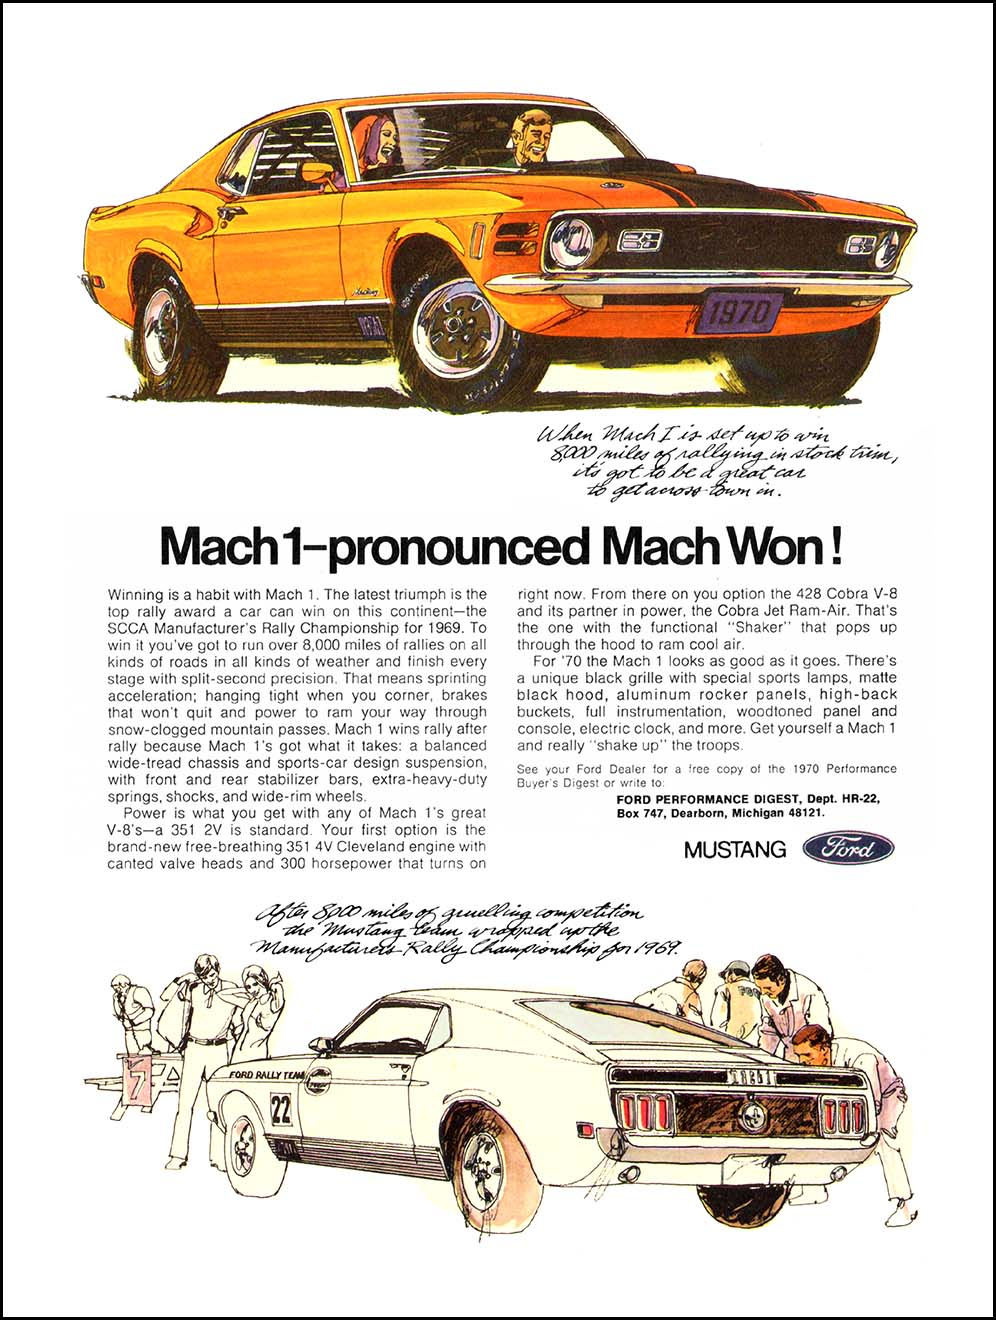 Mustang Mach ad